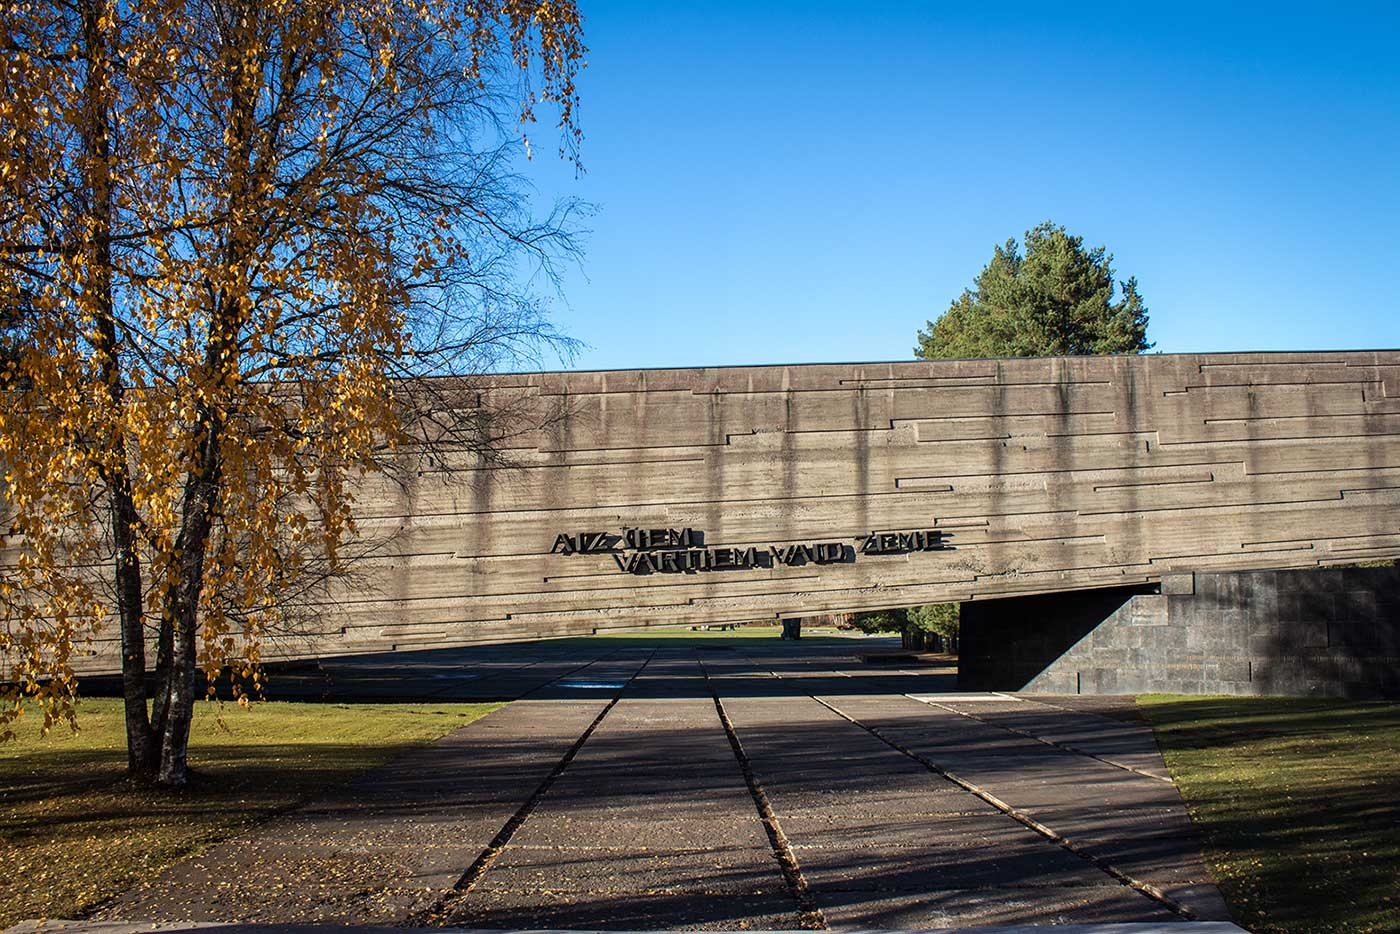 The gallery building, a Brutalist structuremeasuring 100 metres long by 12.5 metres high. Salaspils Memorial, Latvia.